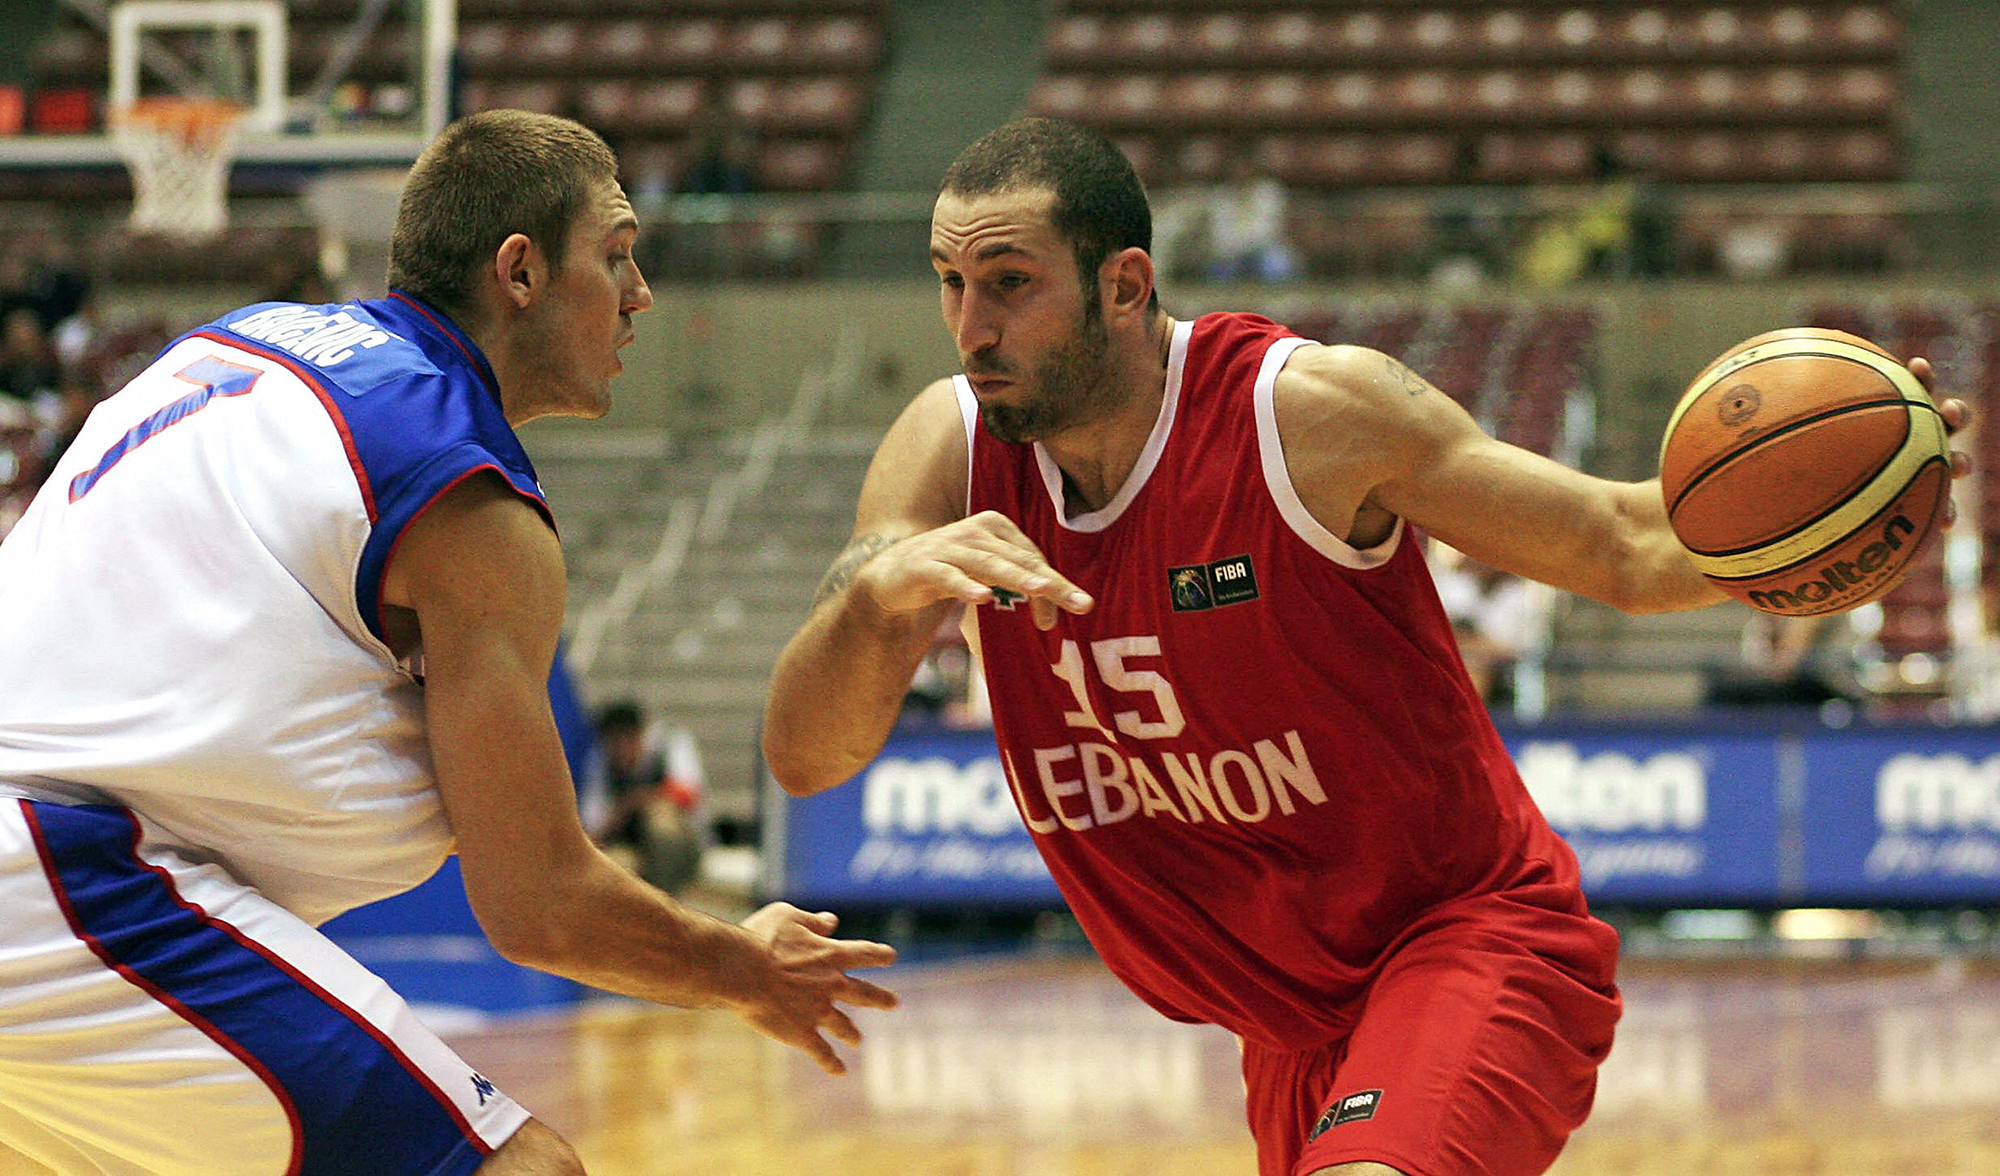 A city 'ruined in 30 seconds': Lebanese basketball great Fadi El Khatib weeps for Beirut